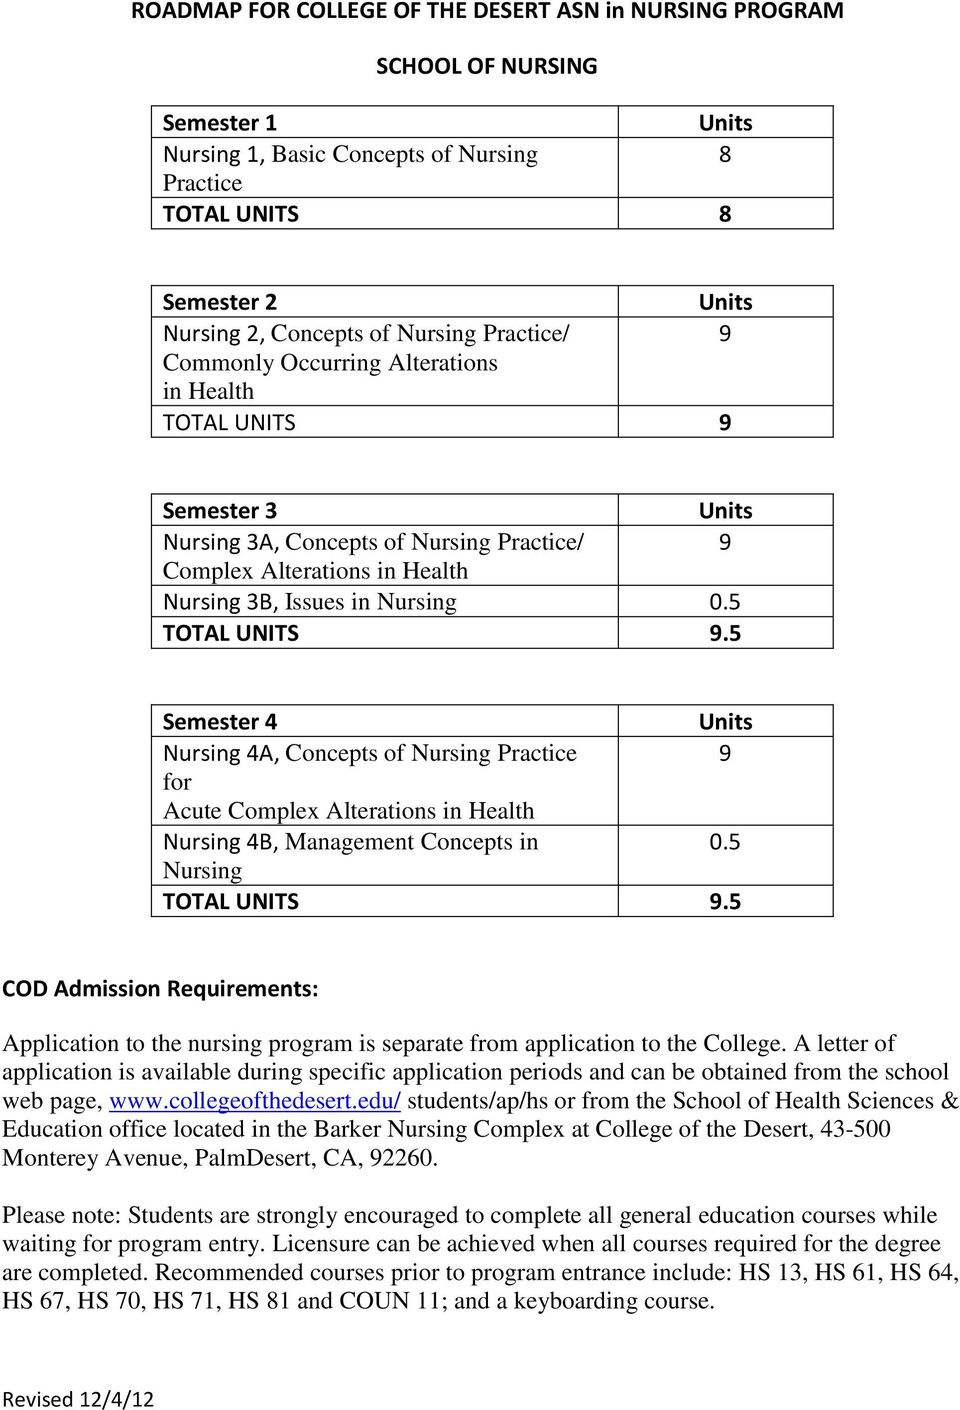 5 Semester Nursing A, Concepts of Nursing Practice 9 for Acute Complex Alterations in Health Nursing B, Management Concepts in 0.5 Nursing TOTAL UNITS 9.